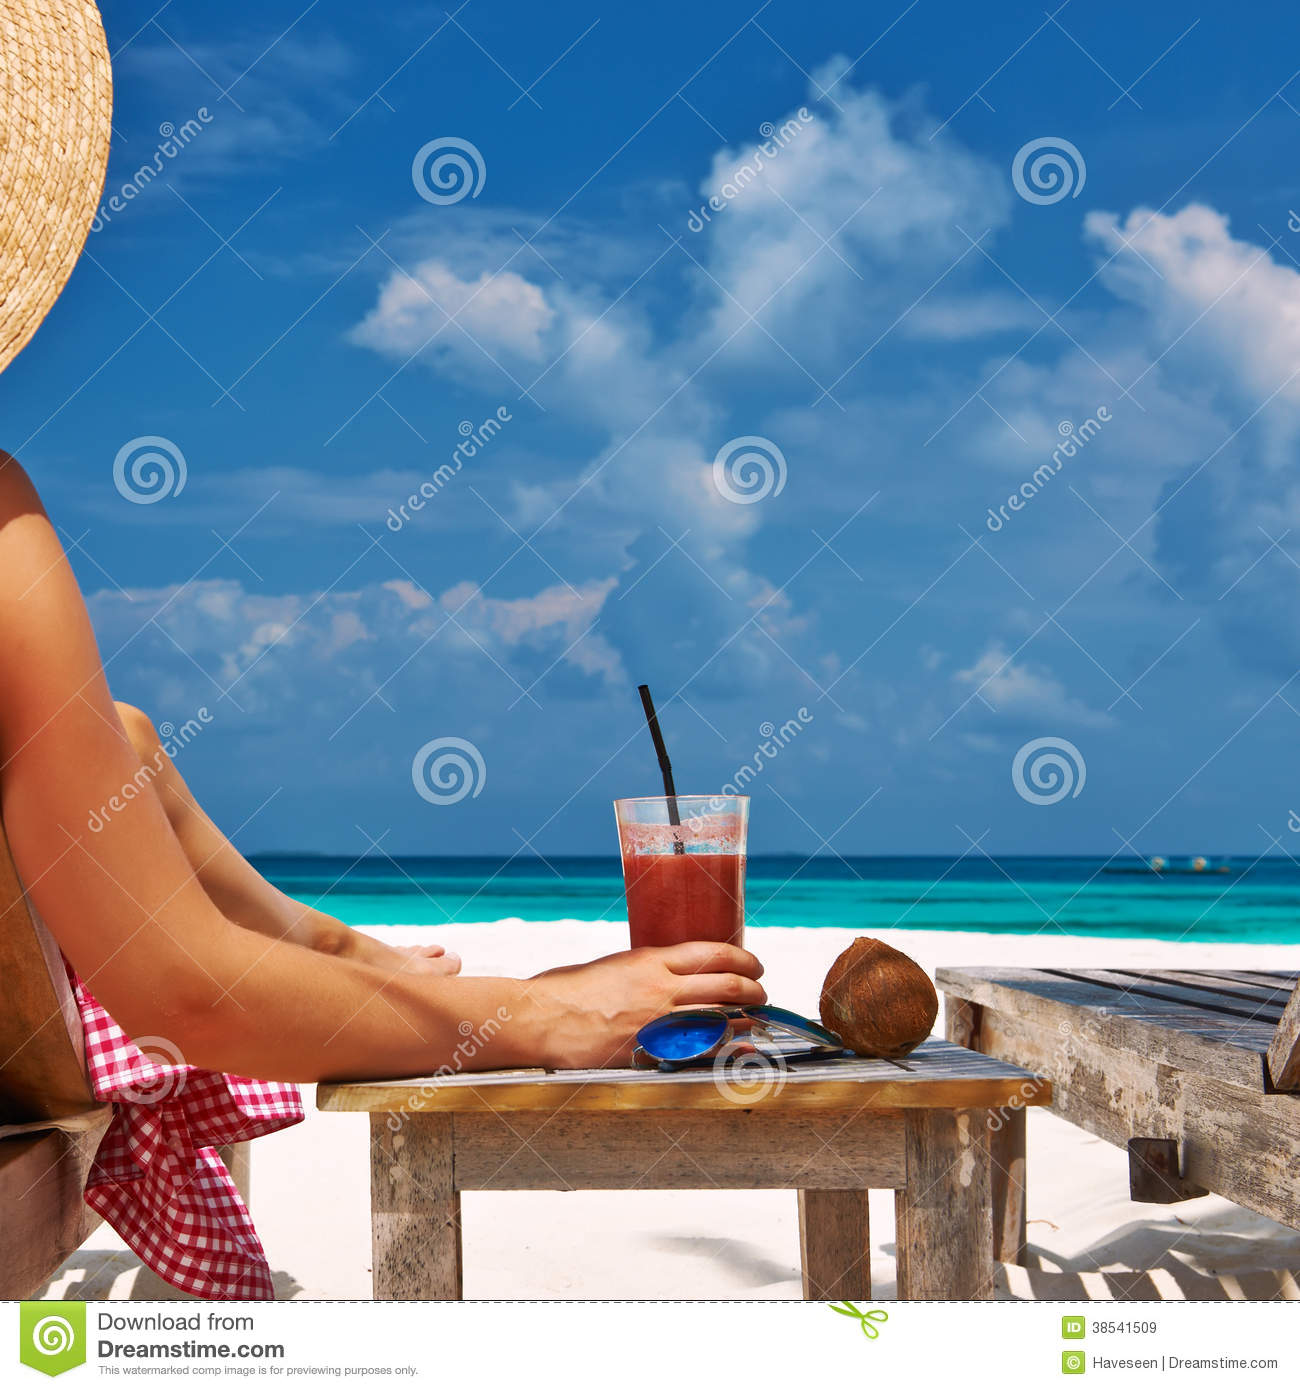 Woman at beach with chaise-lounges